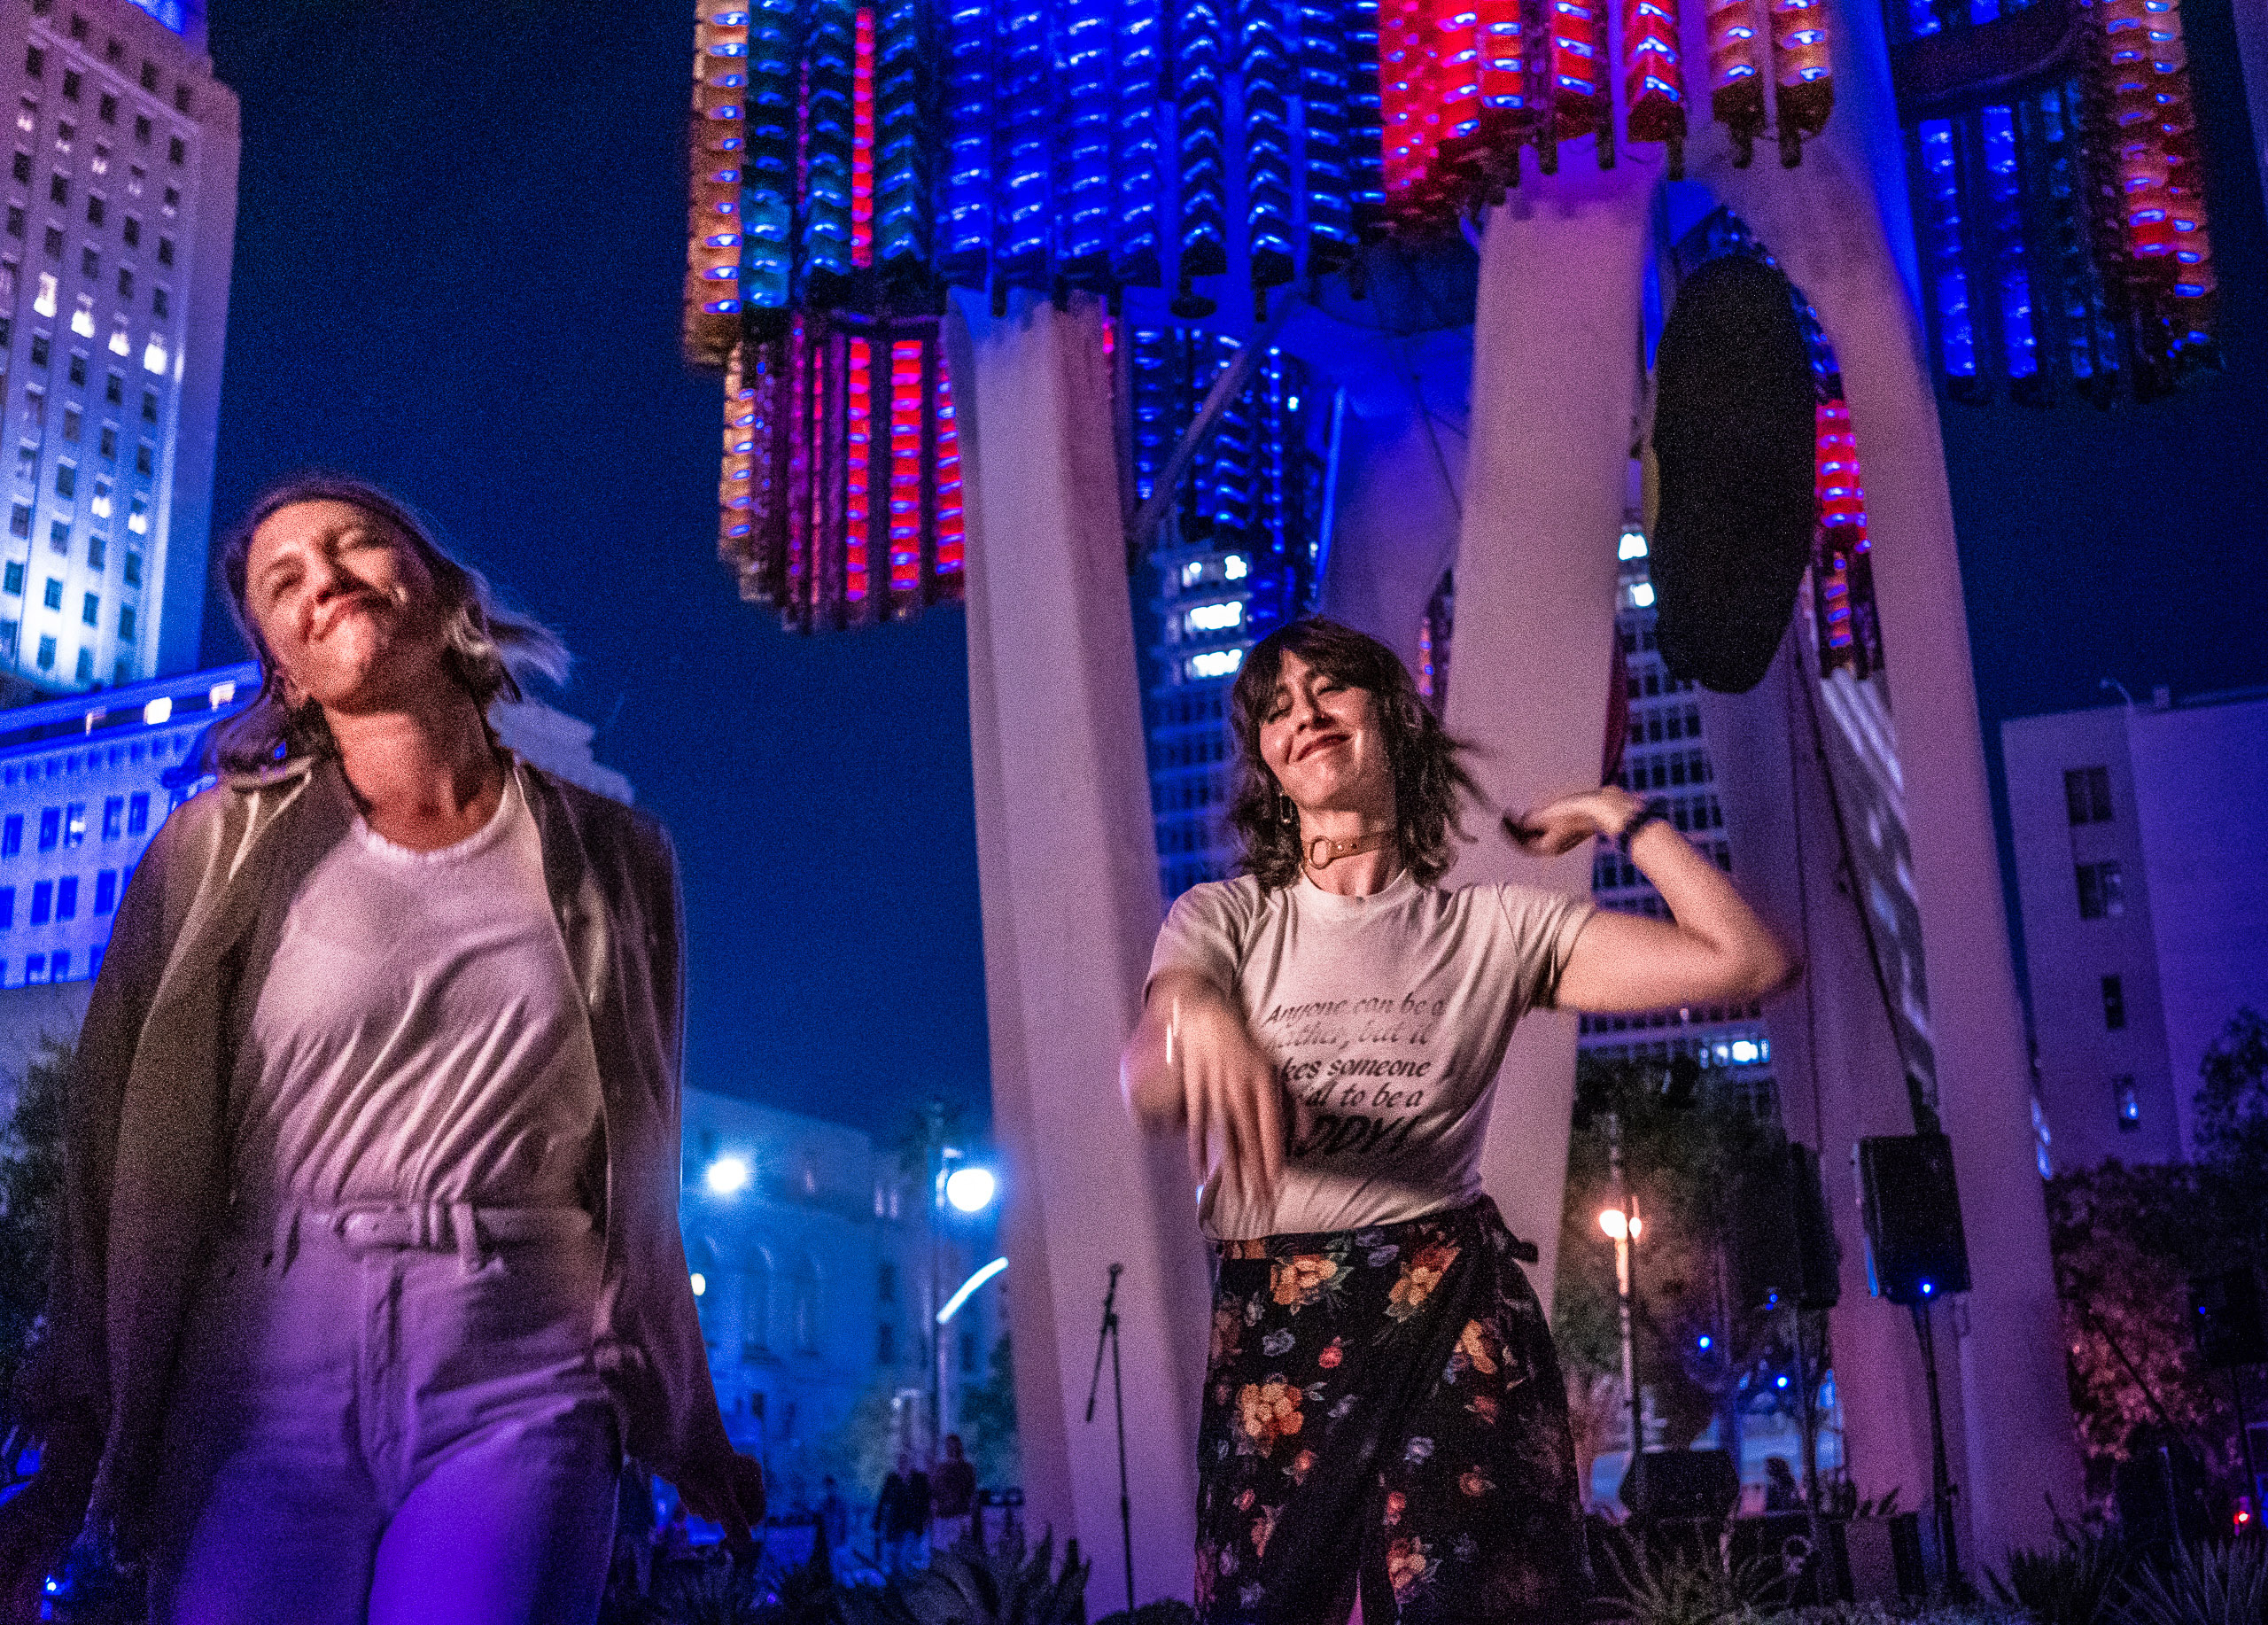 Two women dancing in front of the 2018 reanimated 1975 Triforium light and sound sculpture in Downtown Los Angeles